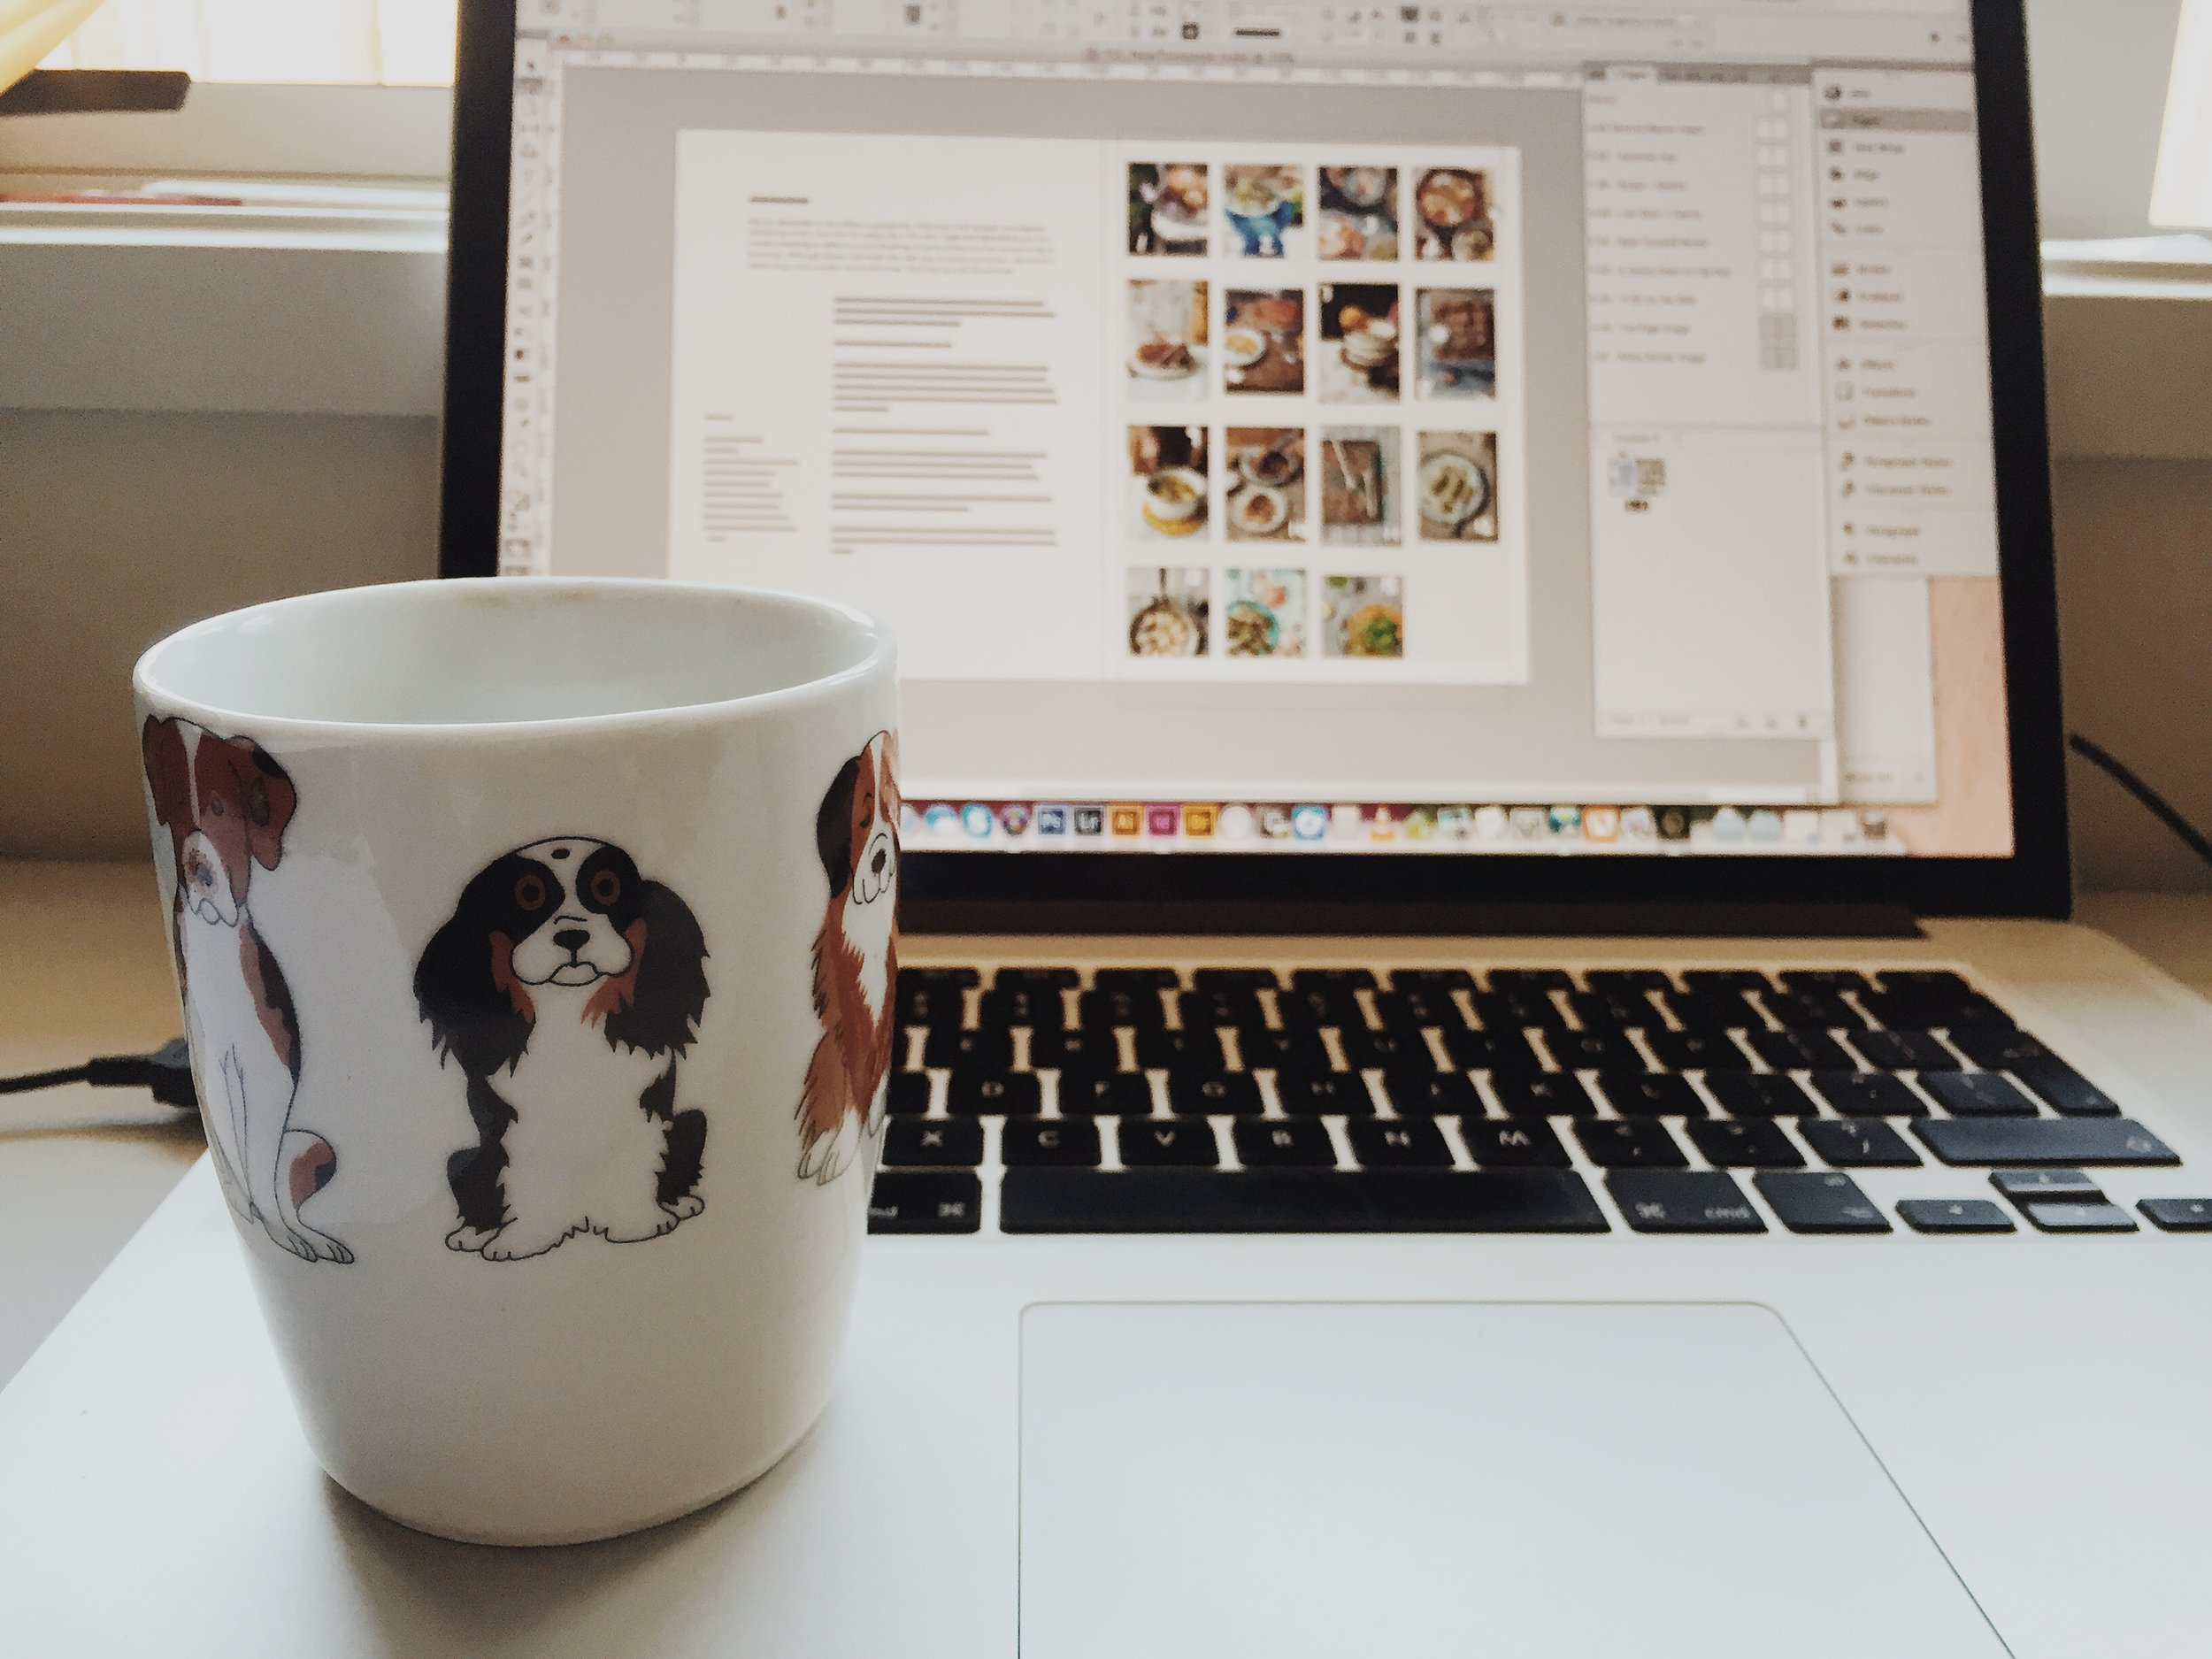 Settling in to design with a lot of coffee